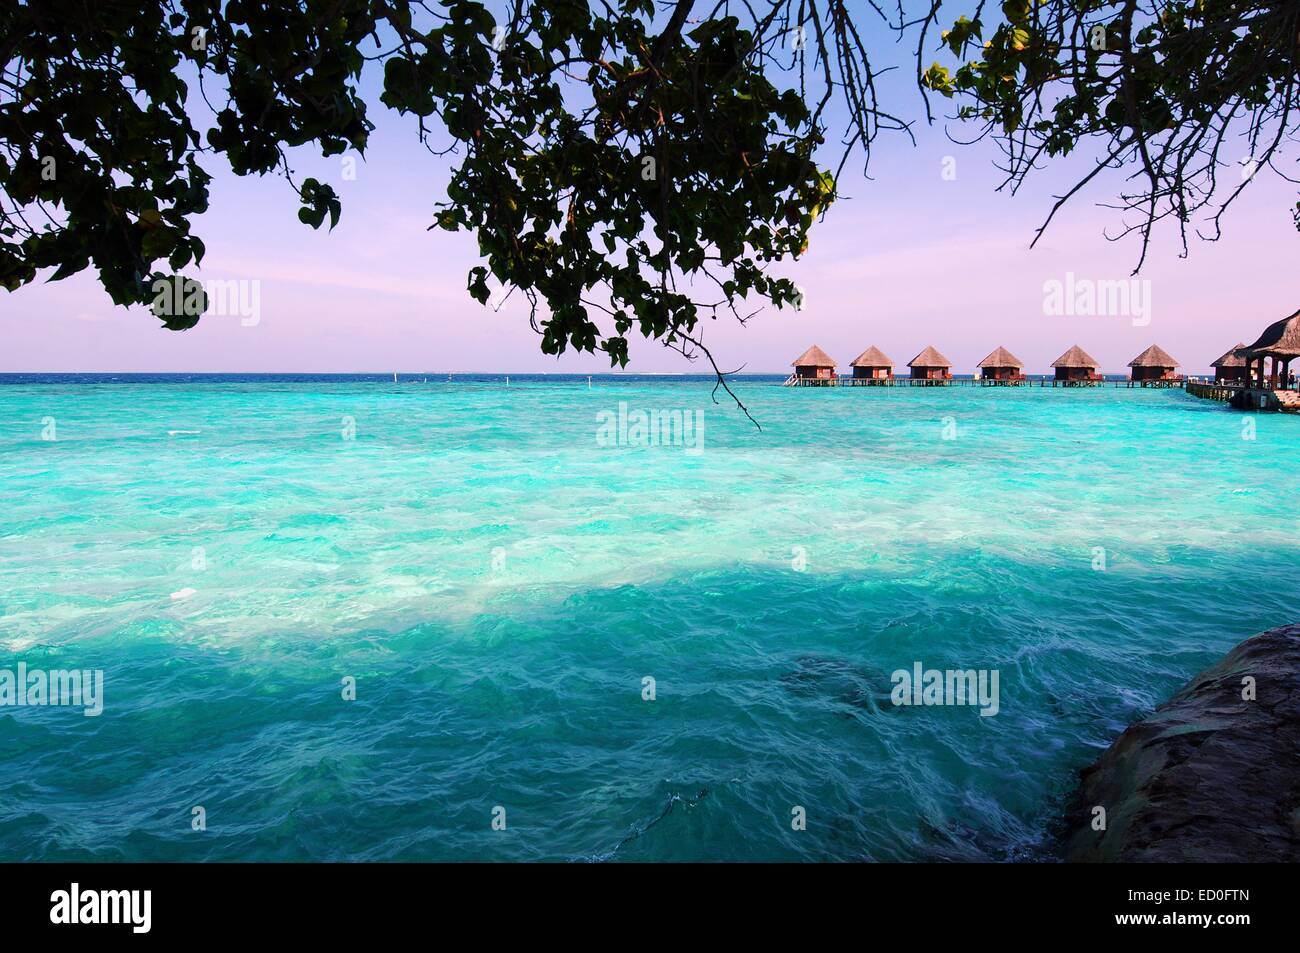 Maldives, Turquoise water and beach huts on horizon - Stock Image